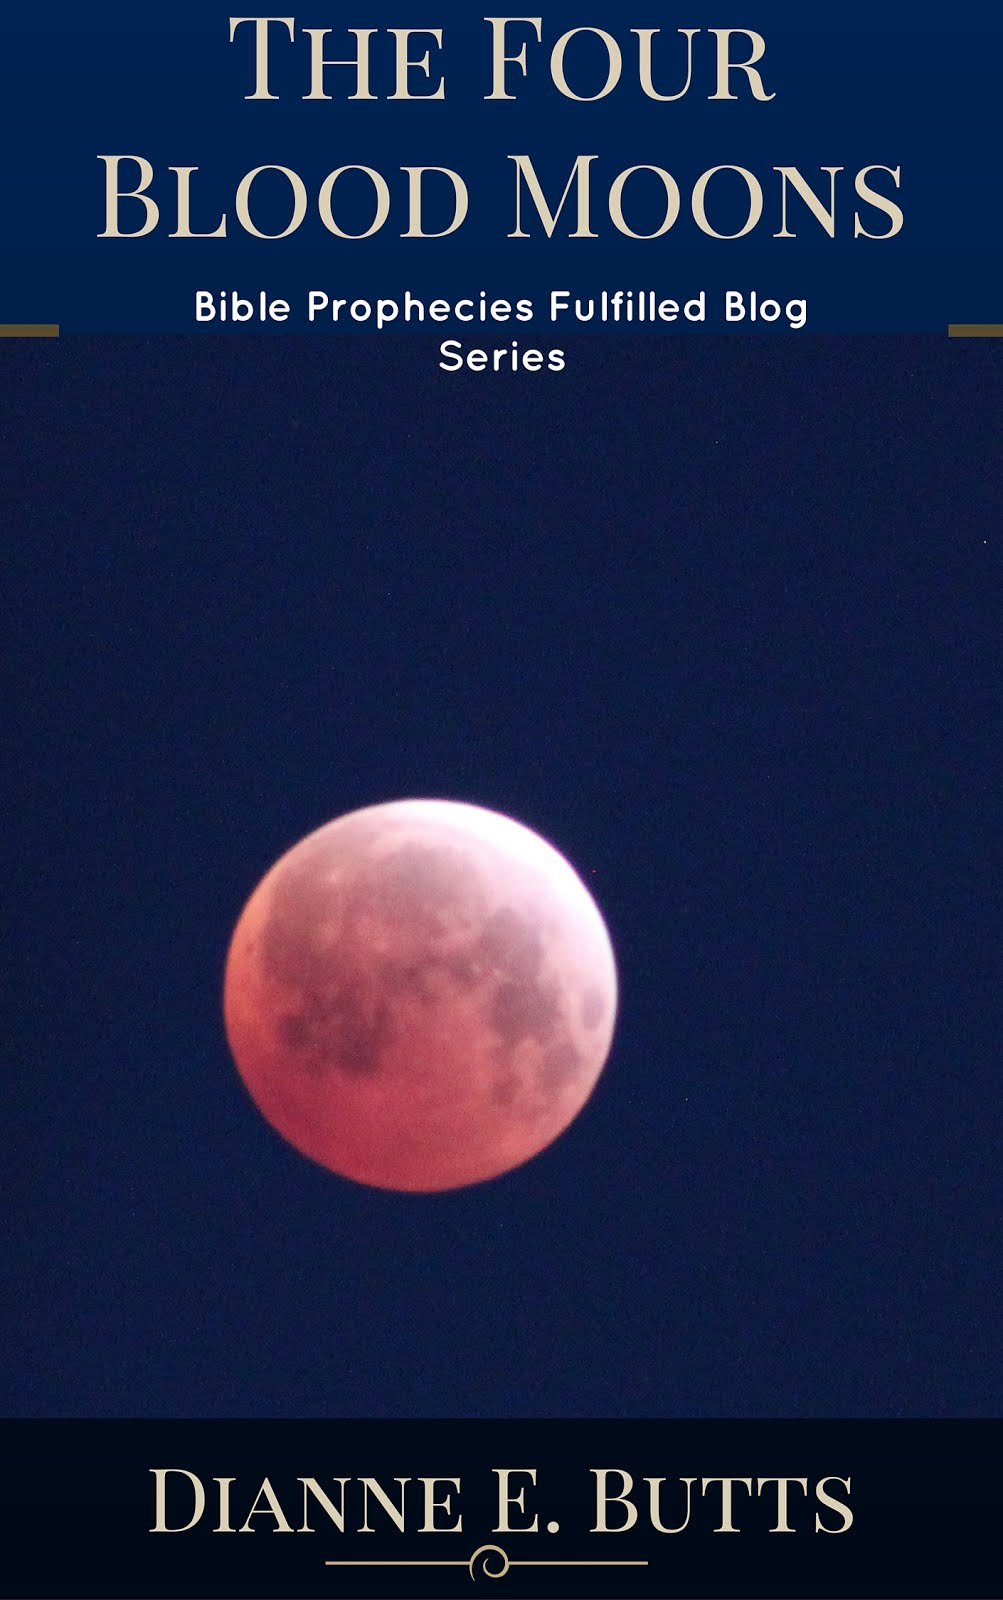 NEW!  The Four Blood Moons: What They Are, What They Mean, and Why They're Important in Light of Bi